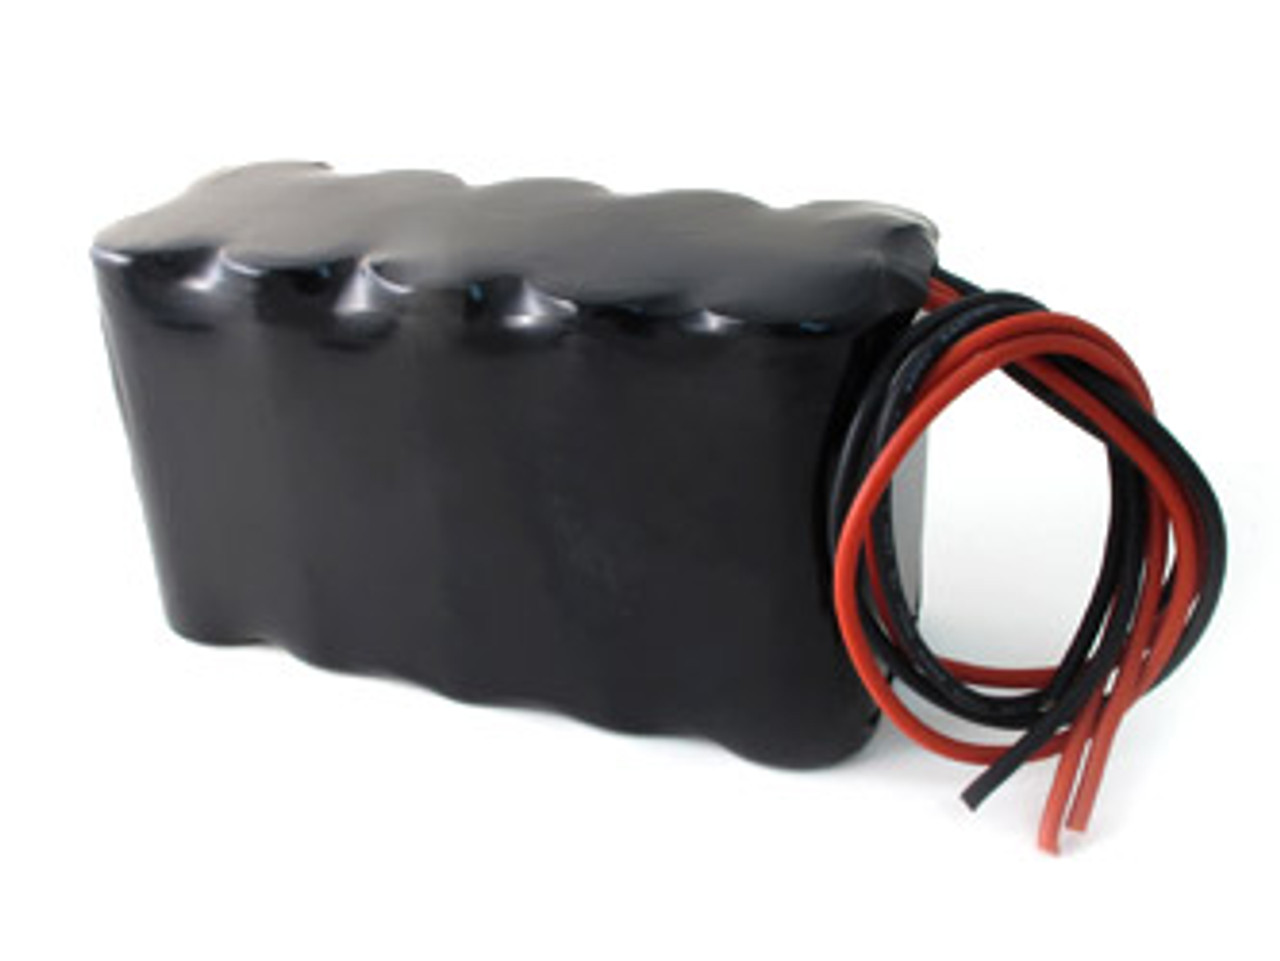 AT: Tenergy 12V 13000mAh NiMH Rechargeable Battery Pack (10S1P, 156.0Wh, 13A Rate, w/ 2 Sets Bare Leads)